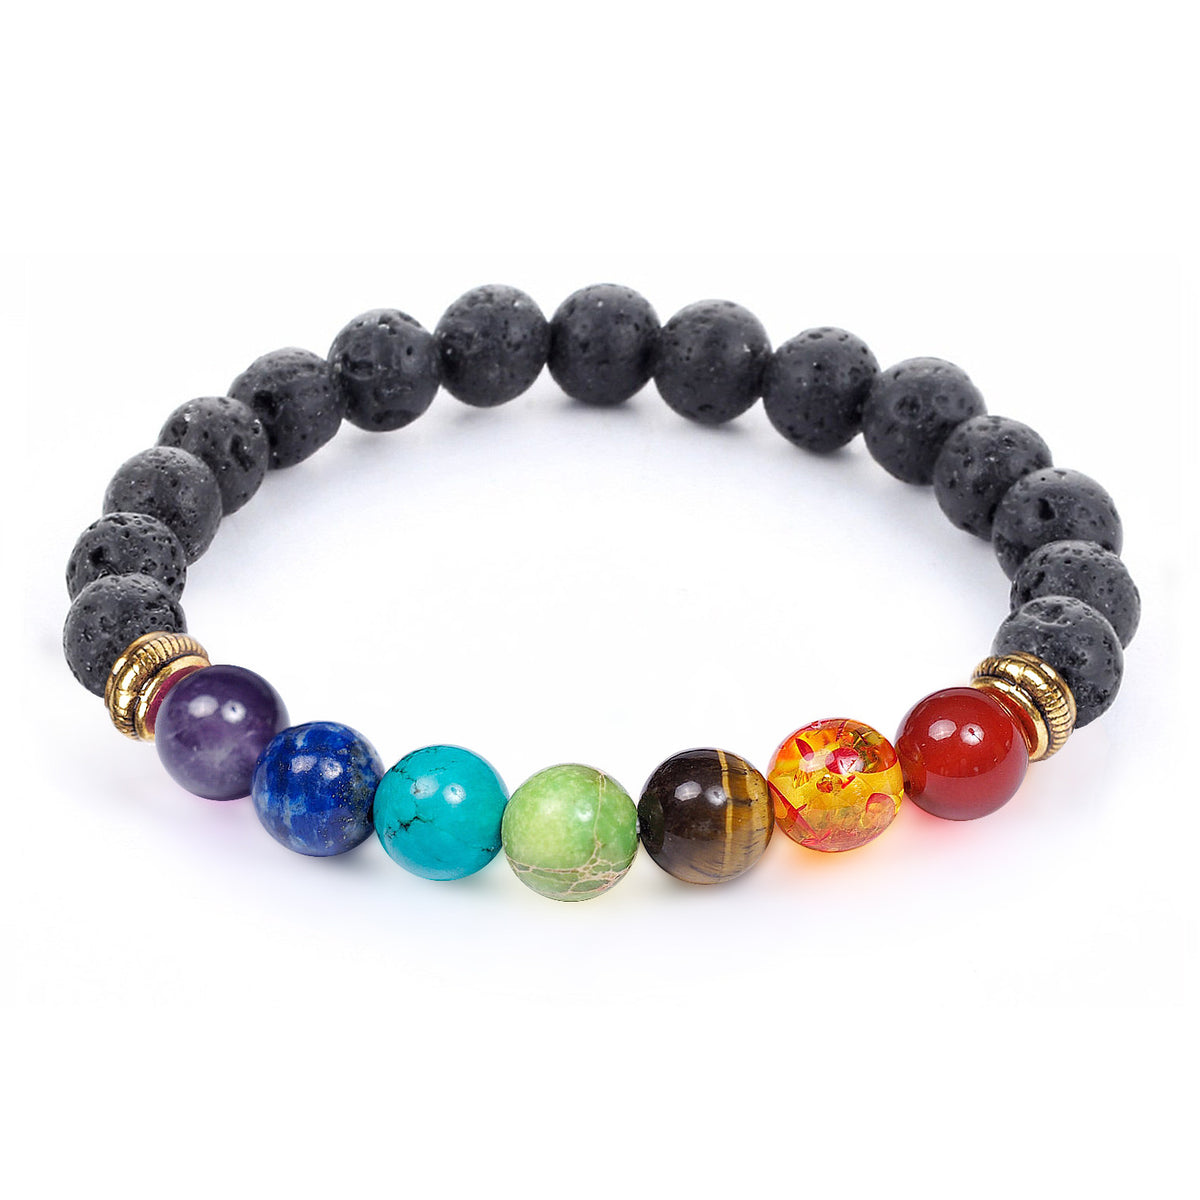 7 Chakra Meditation Healing Stress Bracelet with Lava Rocks Diffuser